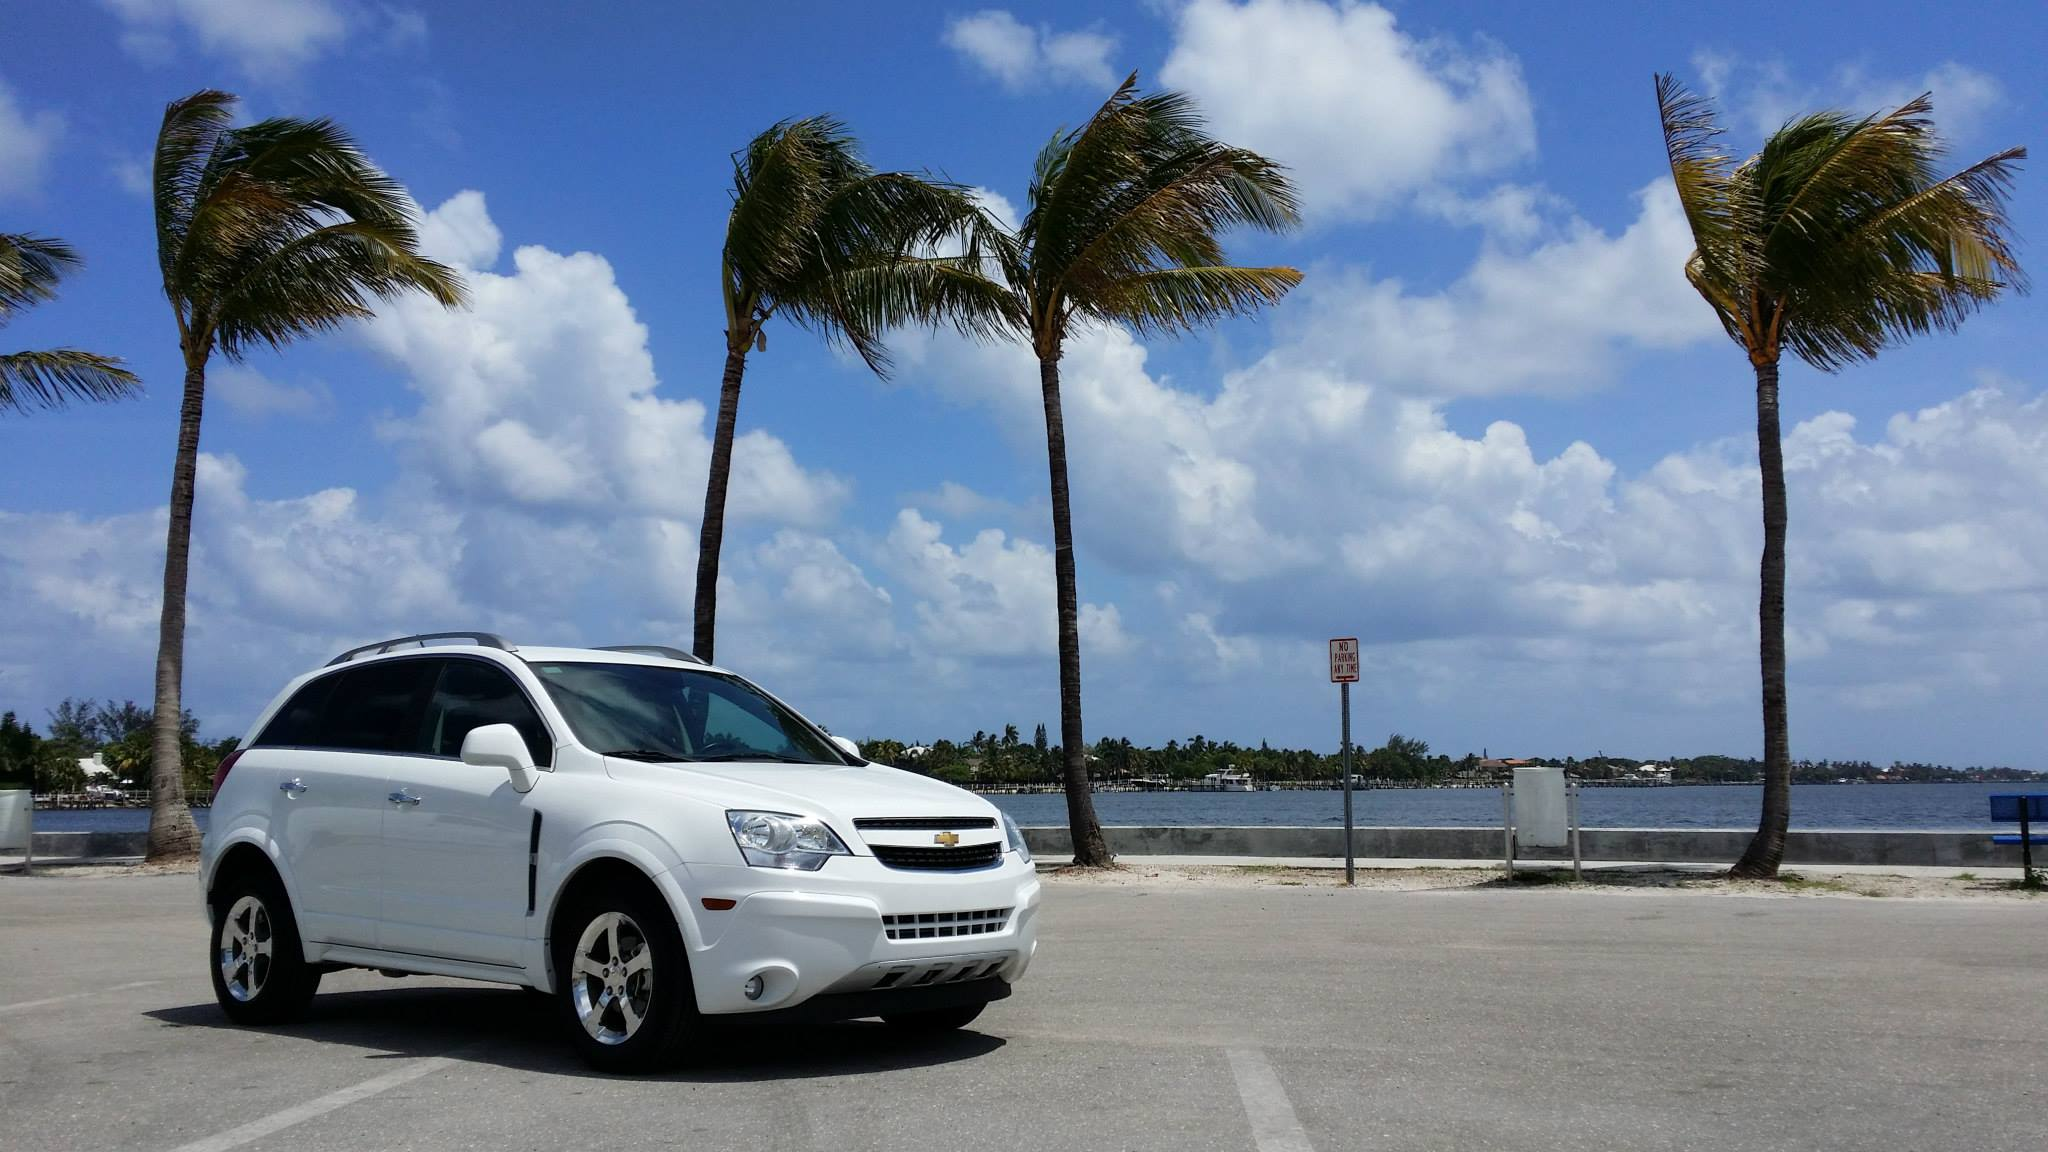 Ambassador Rent A Car - Lake Worth Comfortably